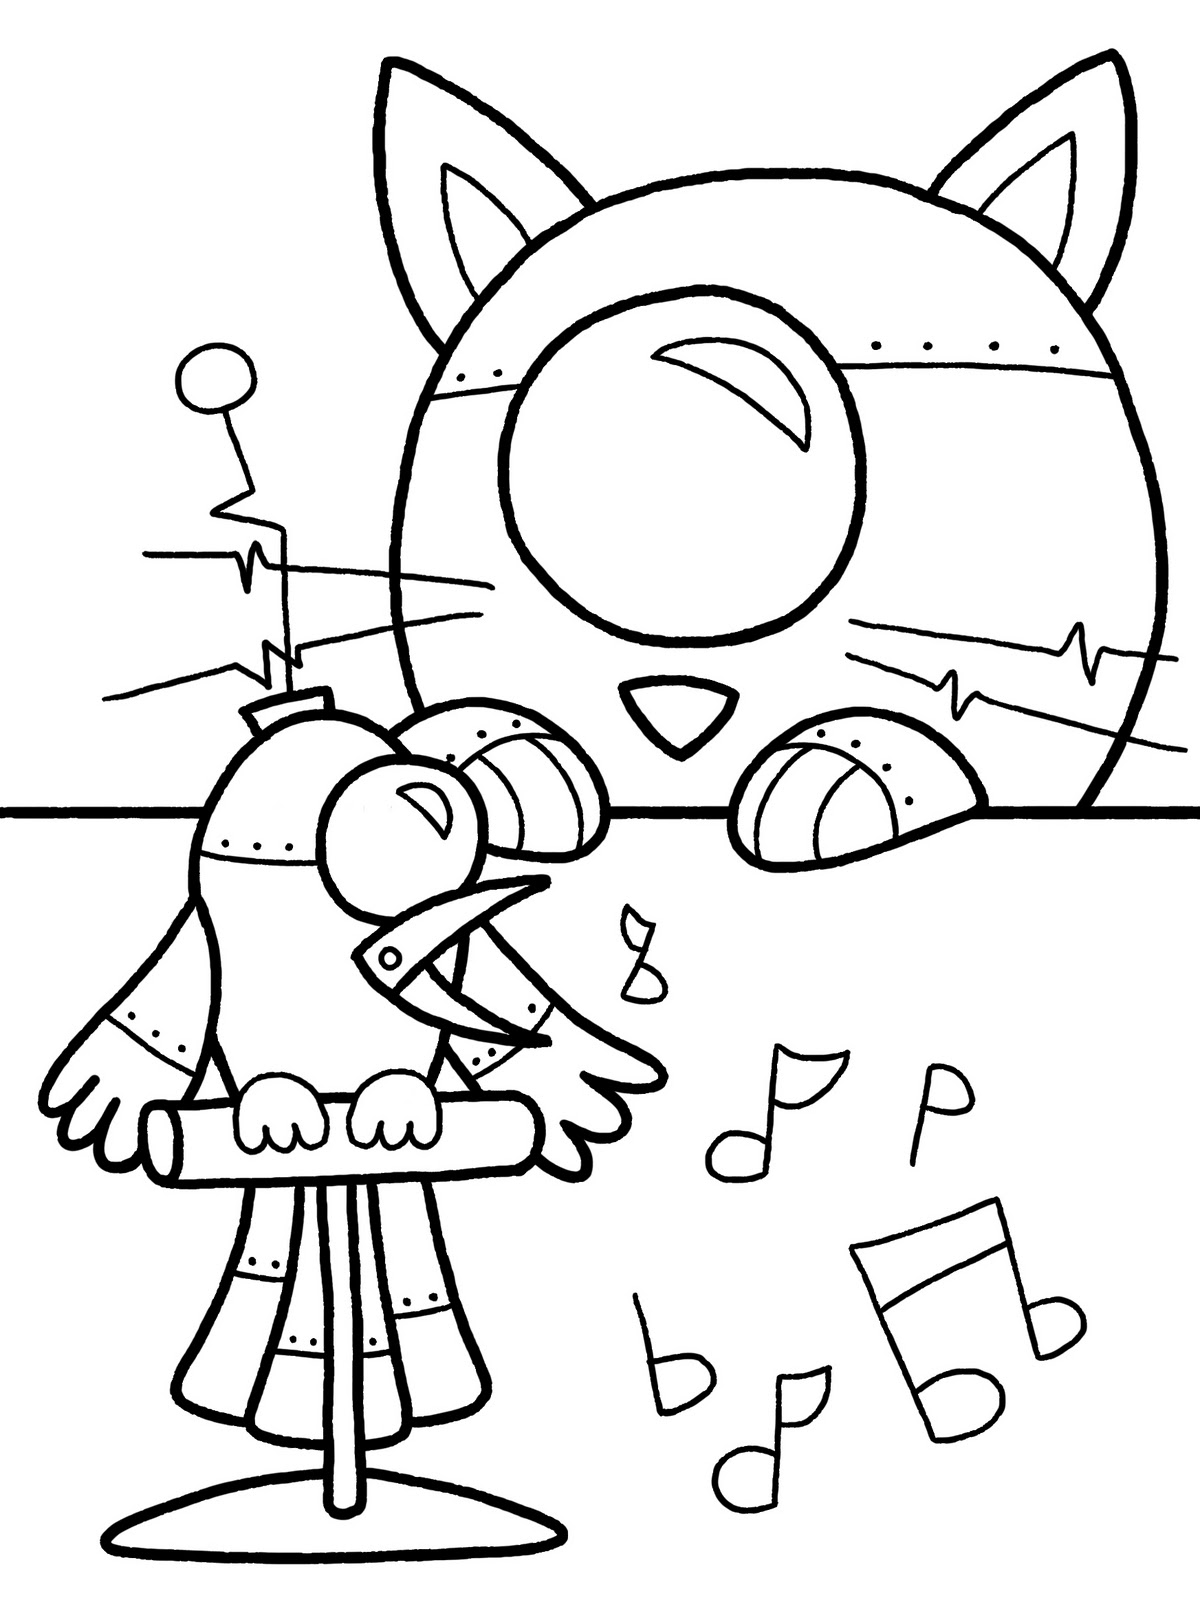 coloring robot pages robot colouring page adult colouring book page one page robot pages coloring